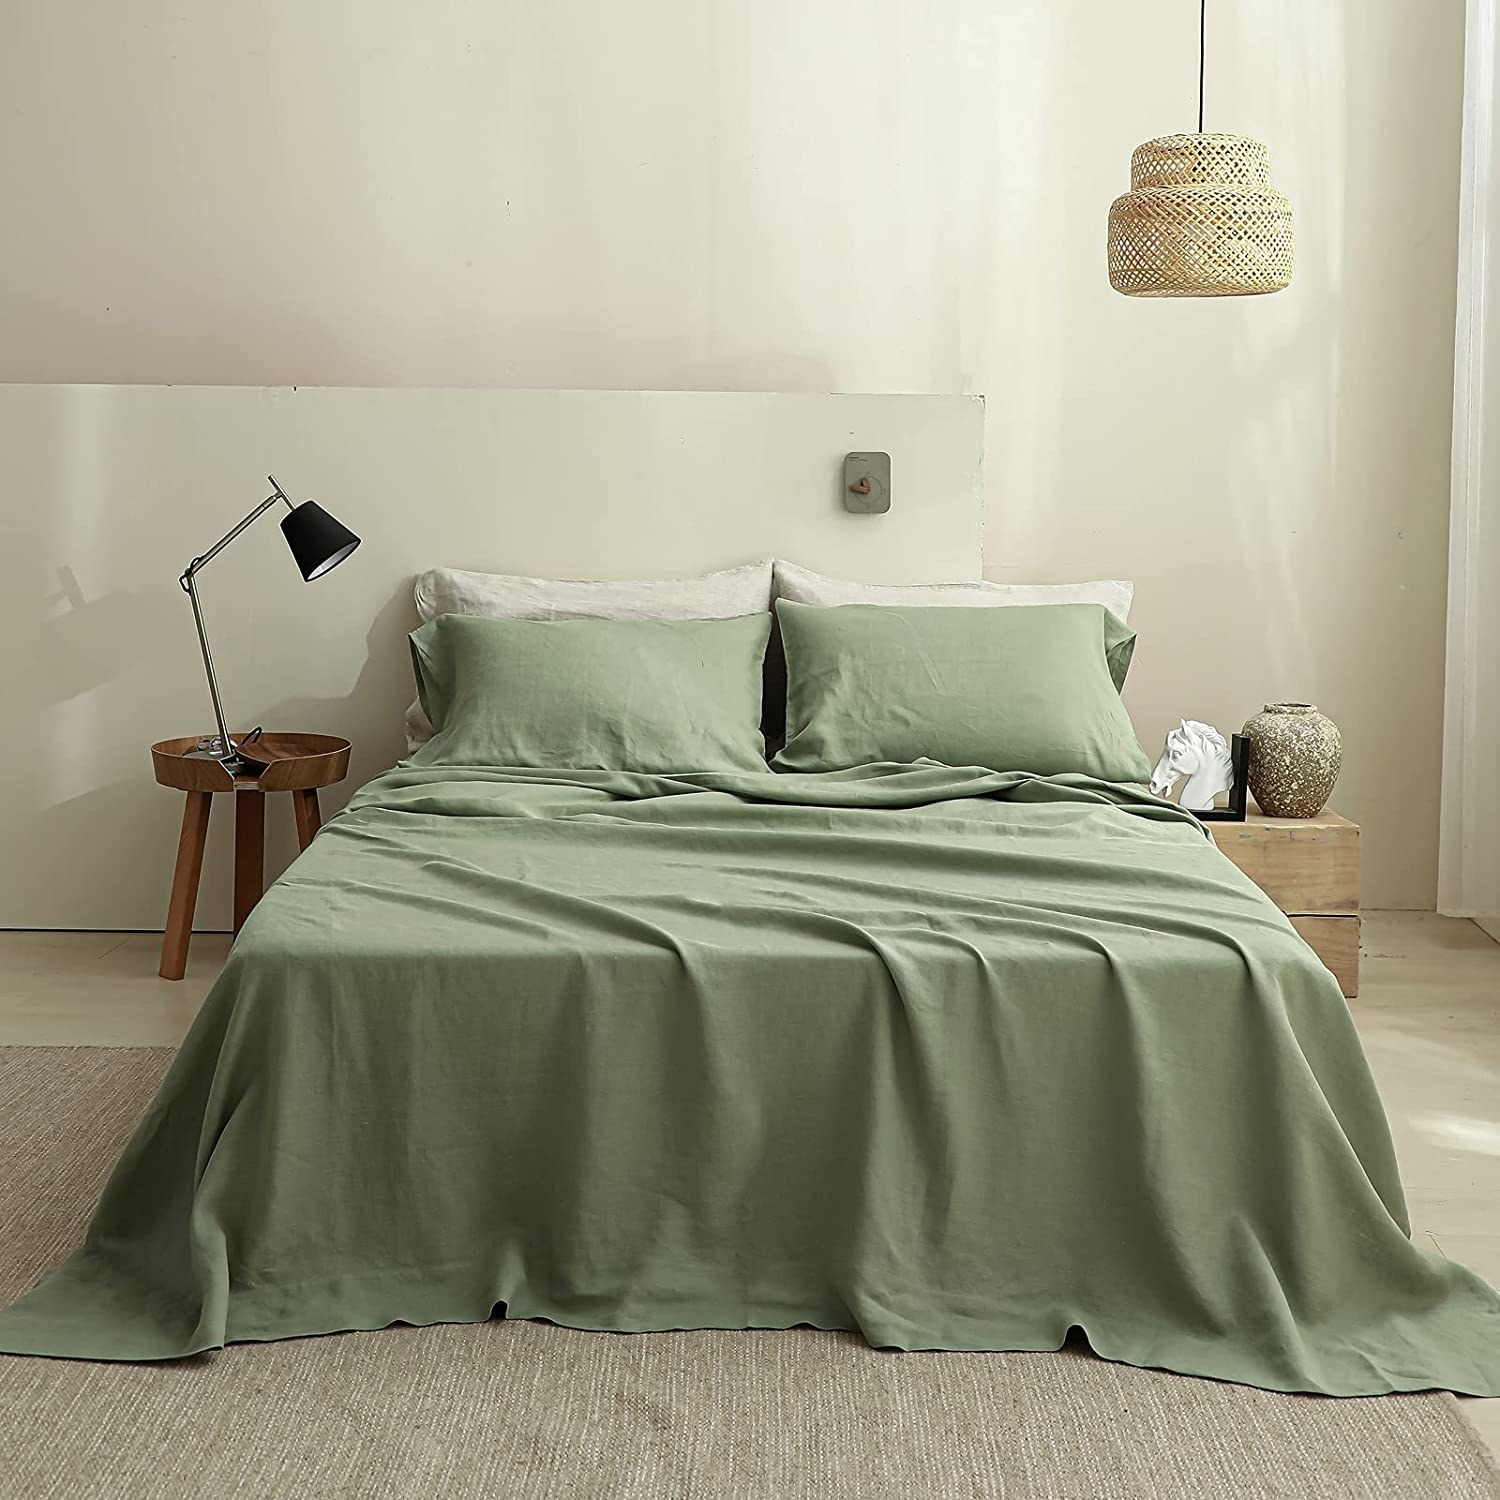 olive green sheets on loosely made bed